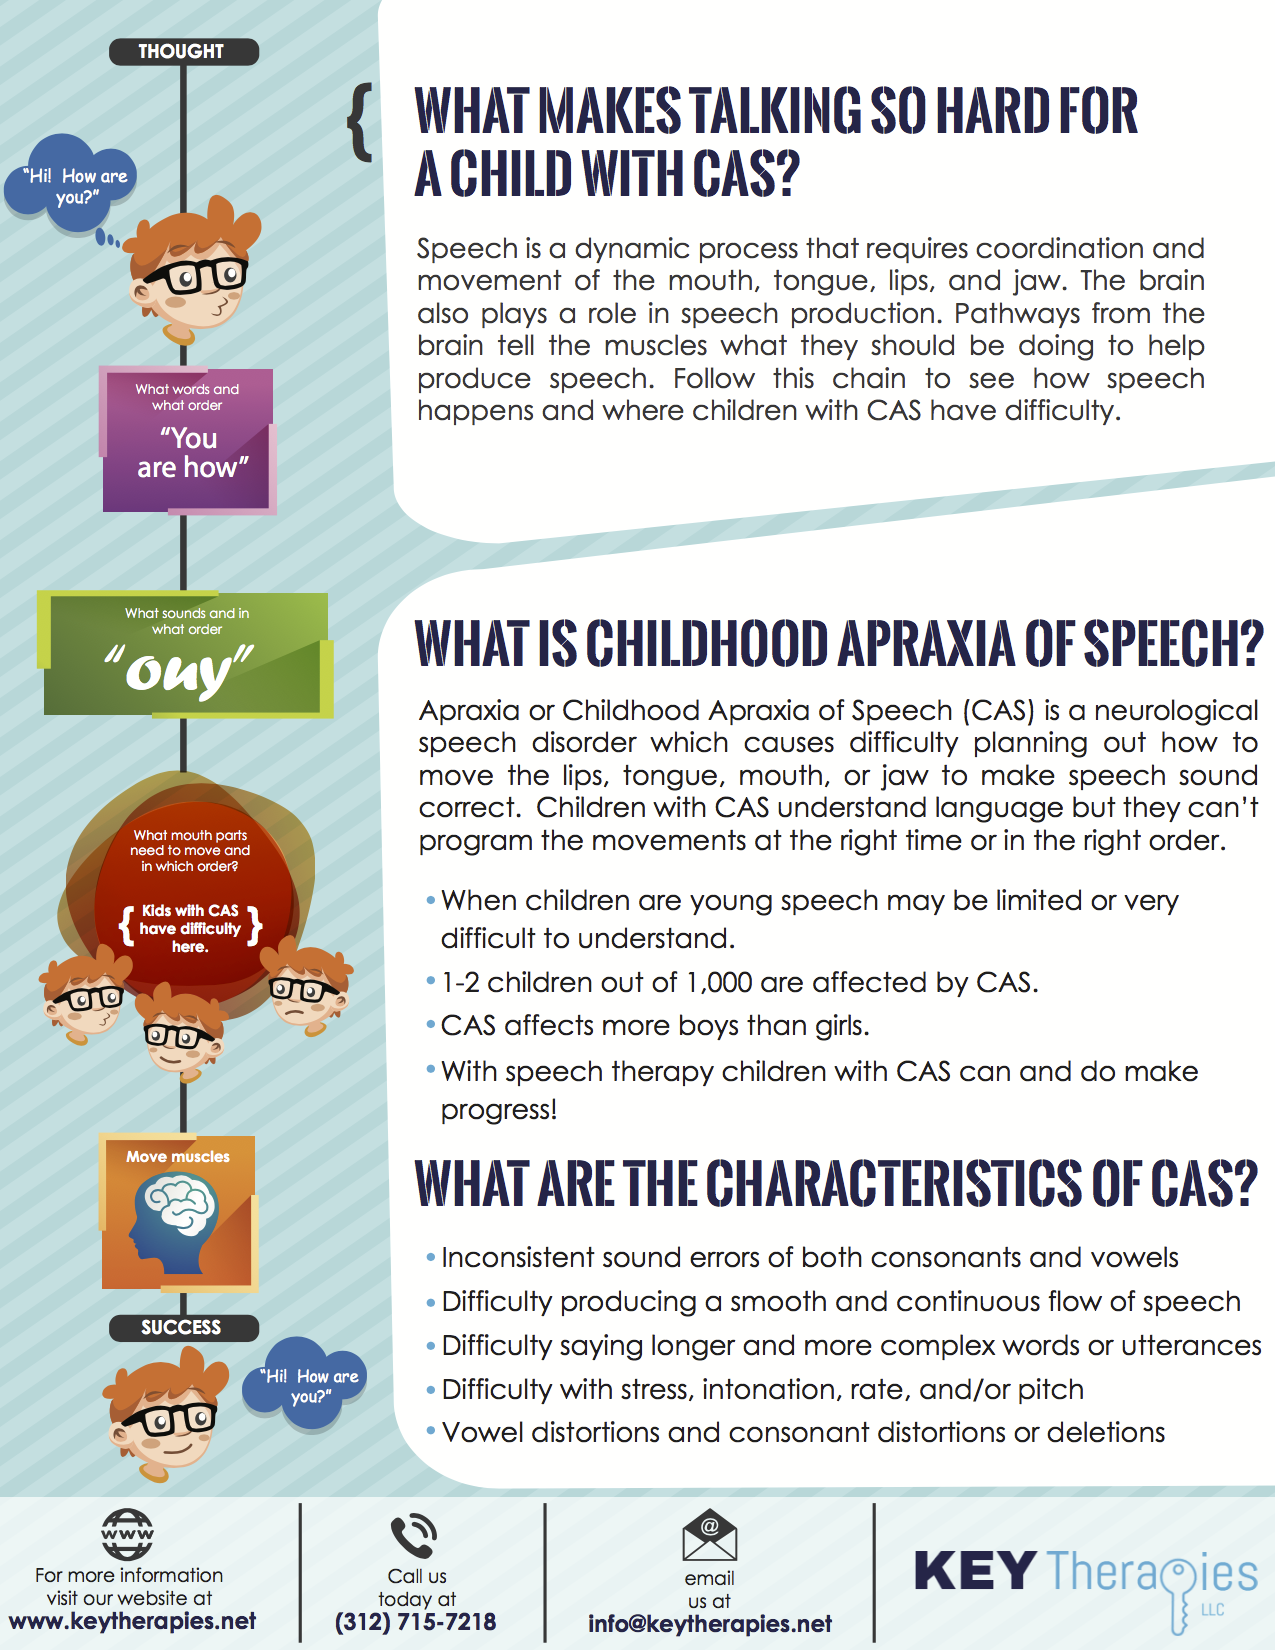 child araxia of speech